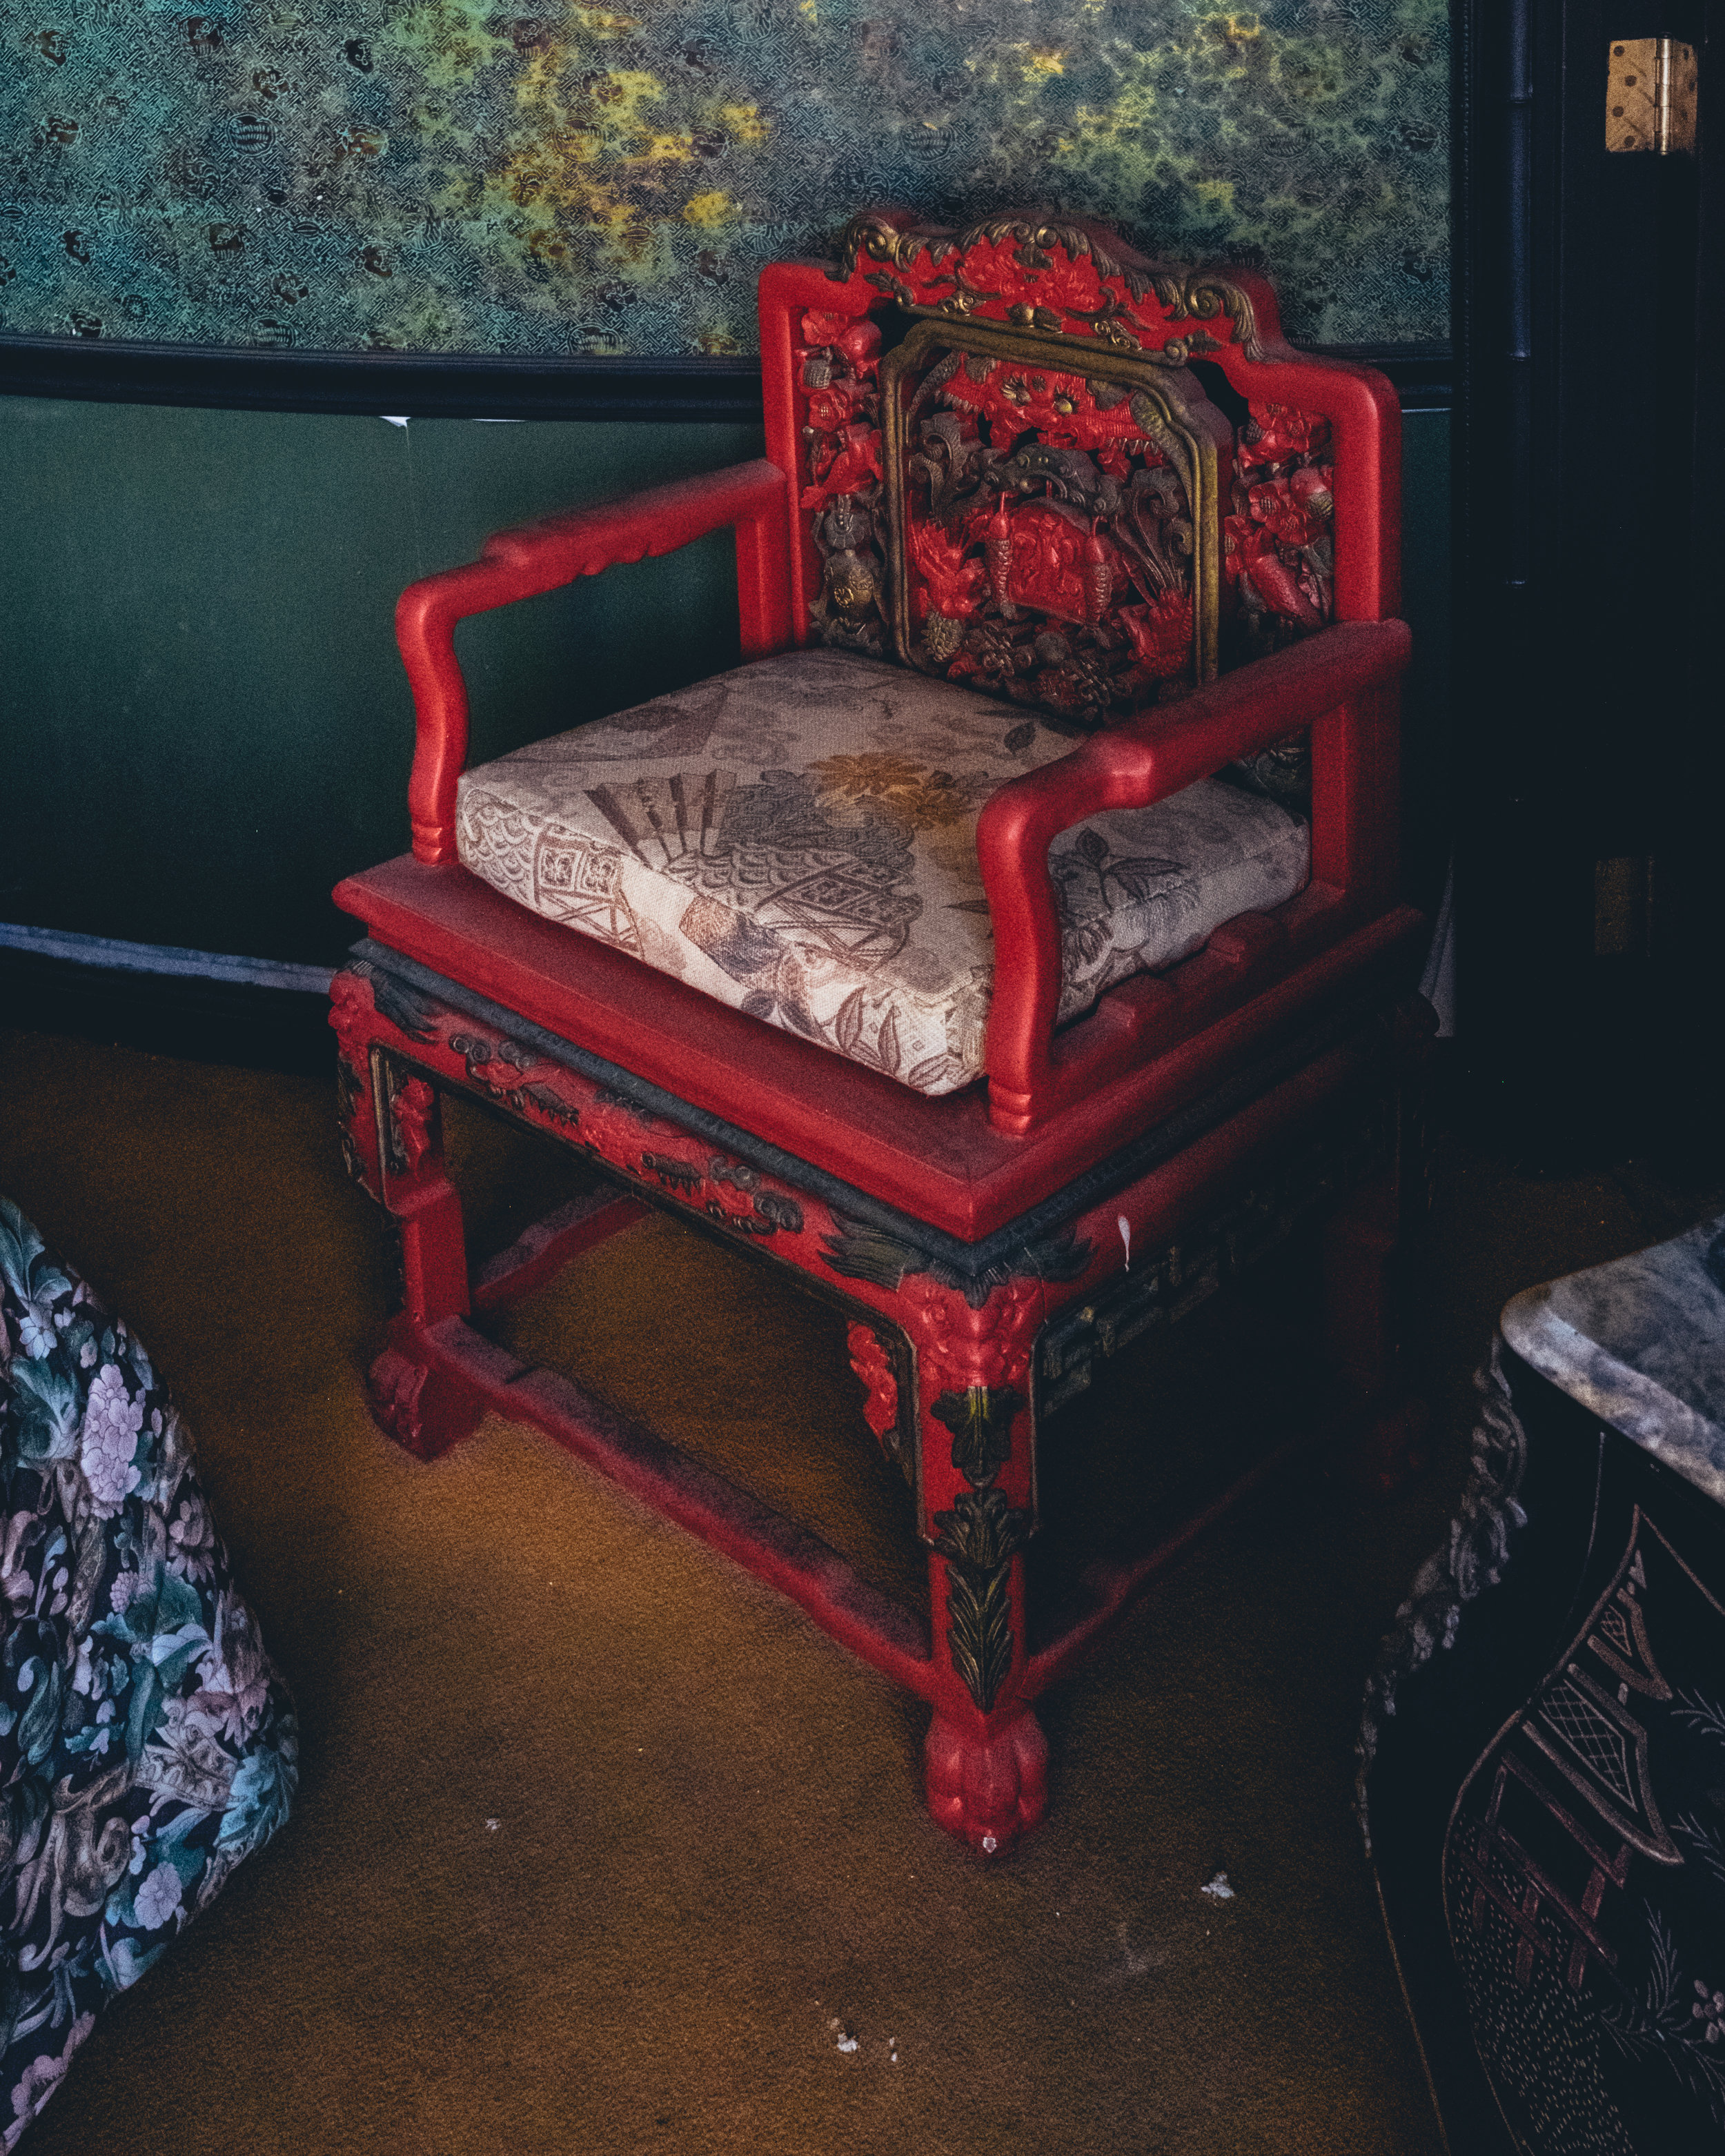 This chair's pop of red in an otherwise cool toned room is something I'm going to do in my next apartment.